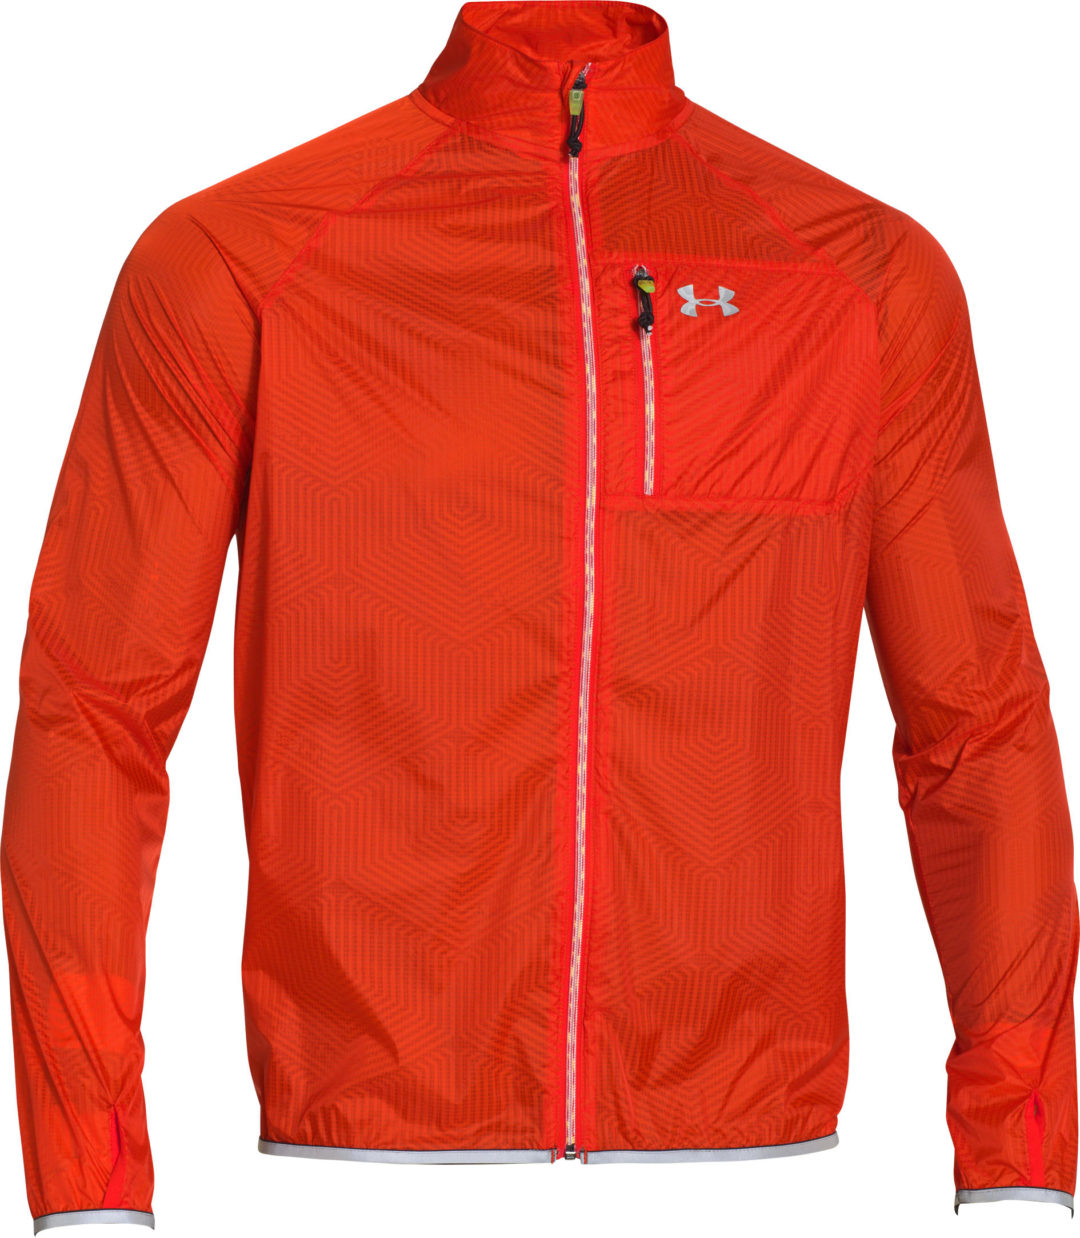 364dc851d3 Under Armour: clevere Chrome Lite Winter-Laufjacke - Blog übers ...